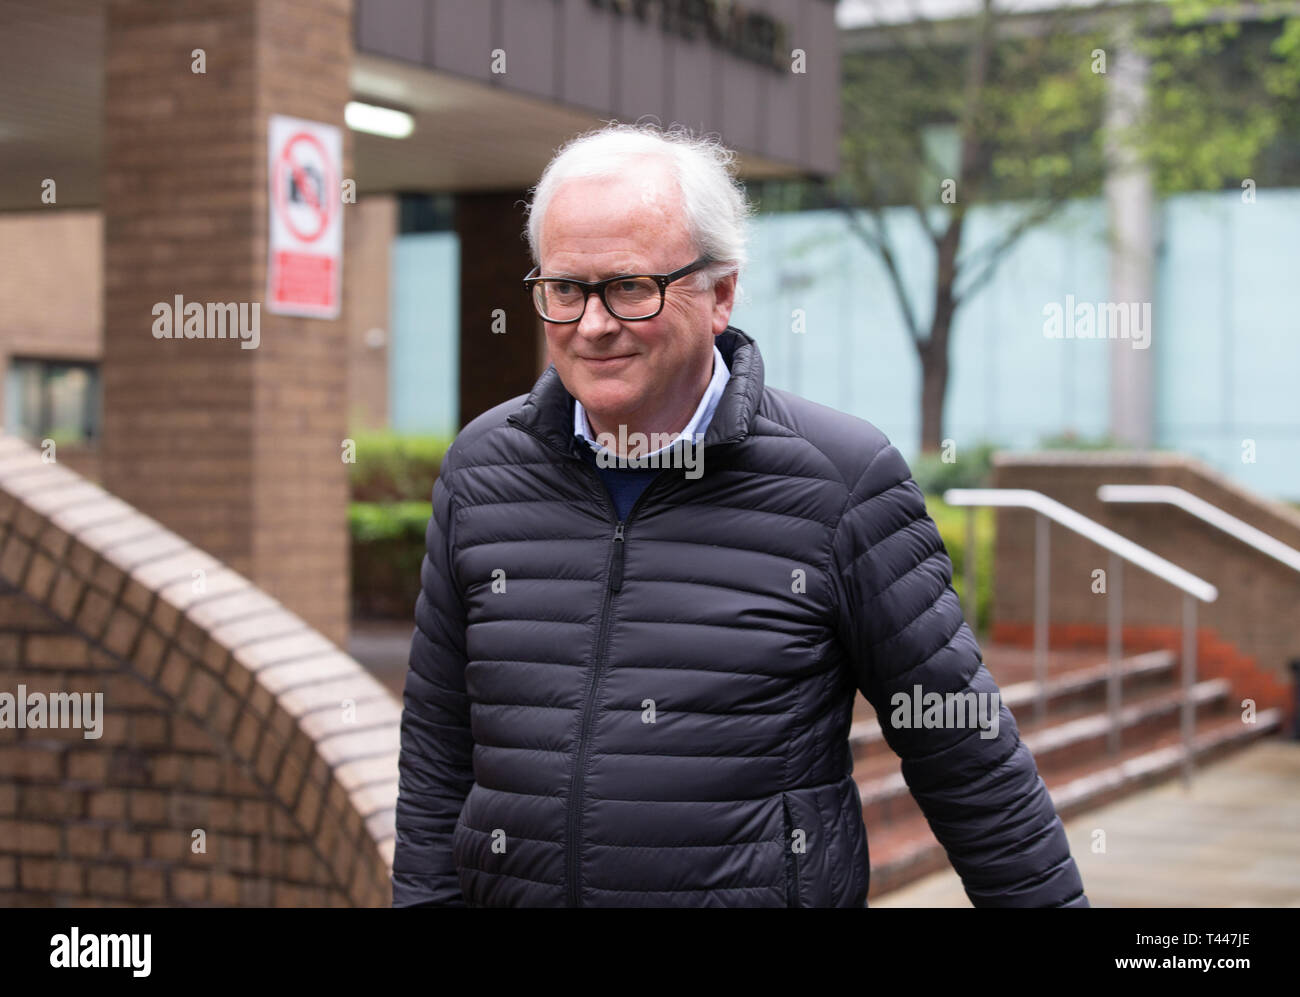 John Varley, Former Chief Executive of Barclays Bank, leaves Southwark Crown Court. The trial has been thrown out by the judge. The SFO may appeal. - Stock Image